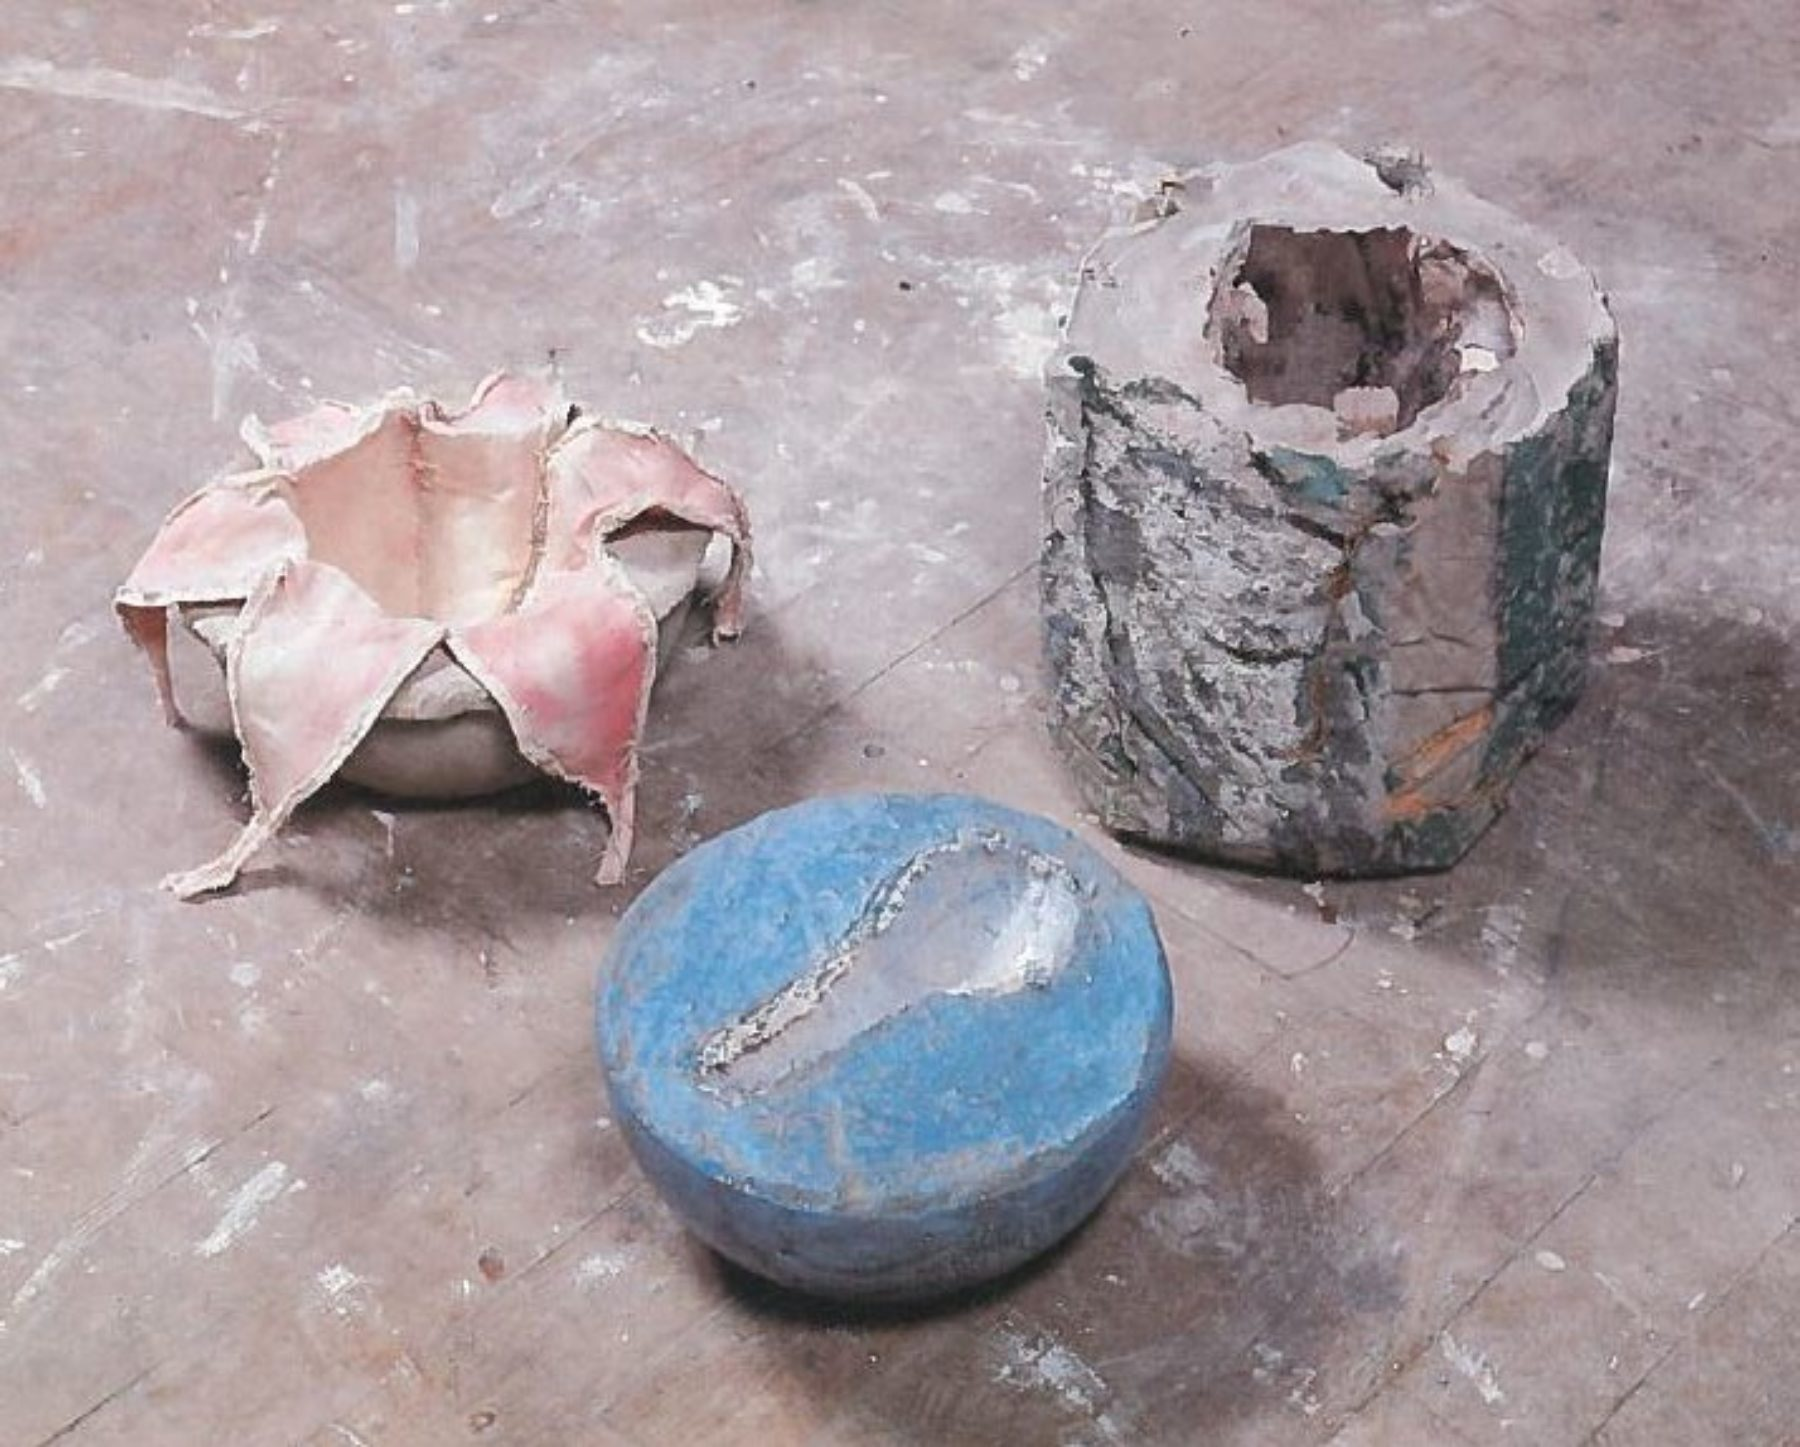 Photograph of three small sculptures placed on a grey, well worn floor. The sculptures are cast concrete - the first is round with a flower shape emerging from the centre. On the right, a cylindrical form with a central hole, and the third form is a bowl shape, coloured blue, with a key shape removed from the centre.